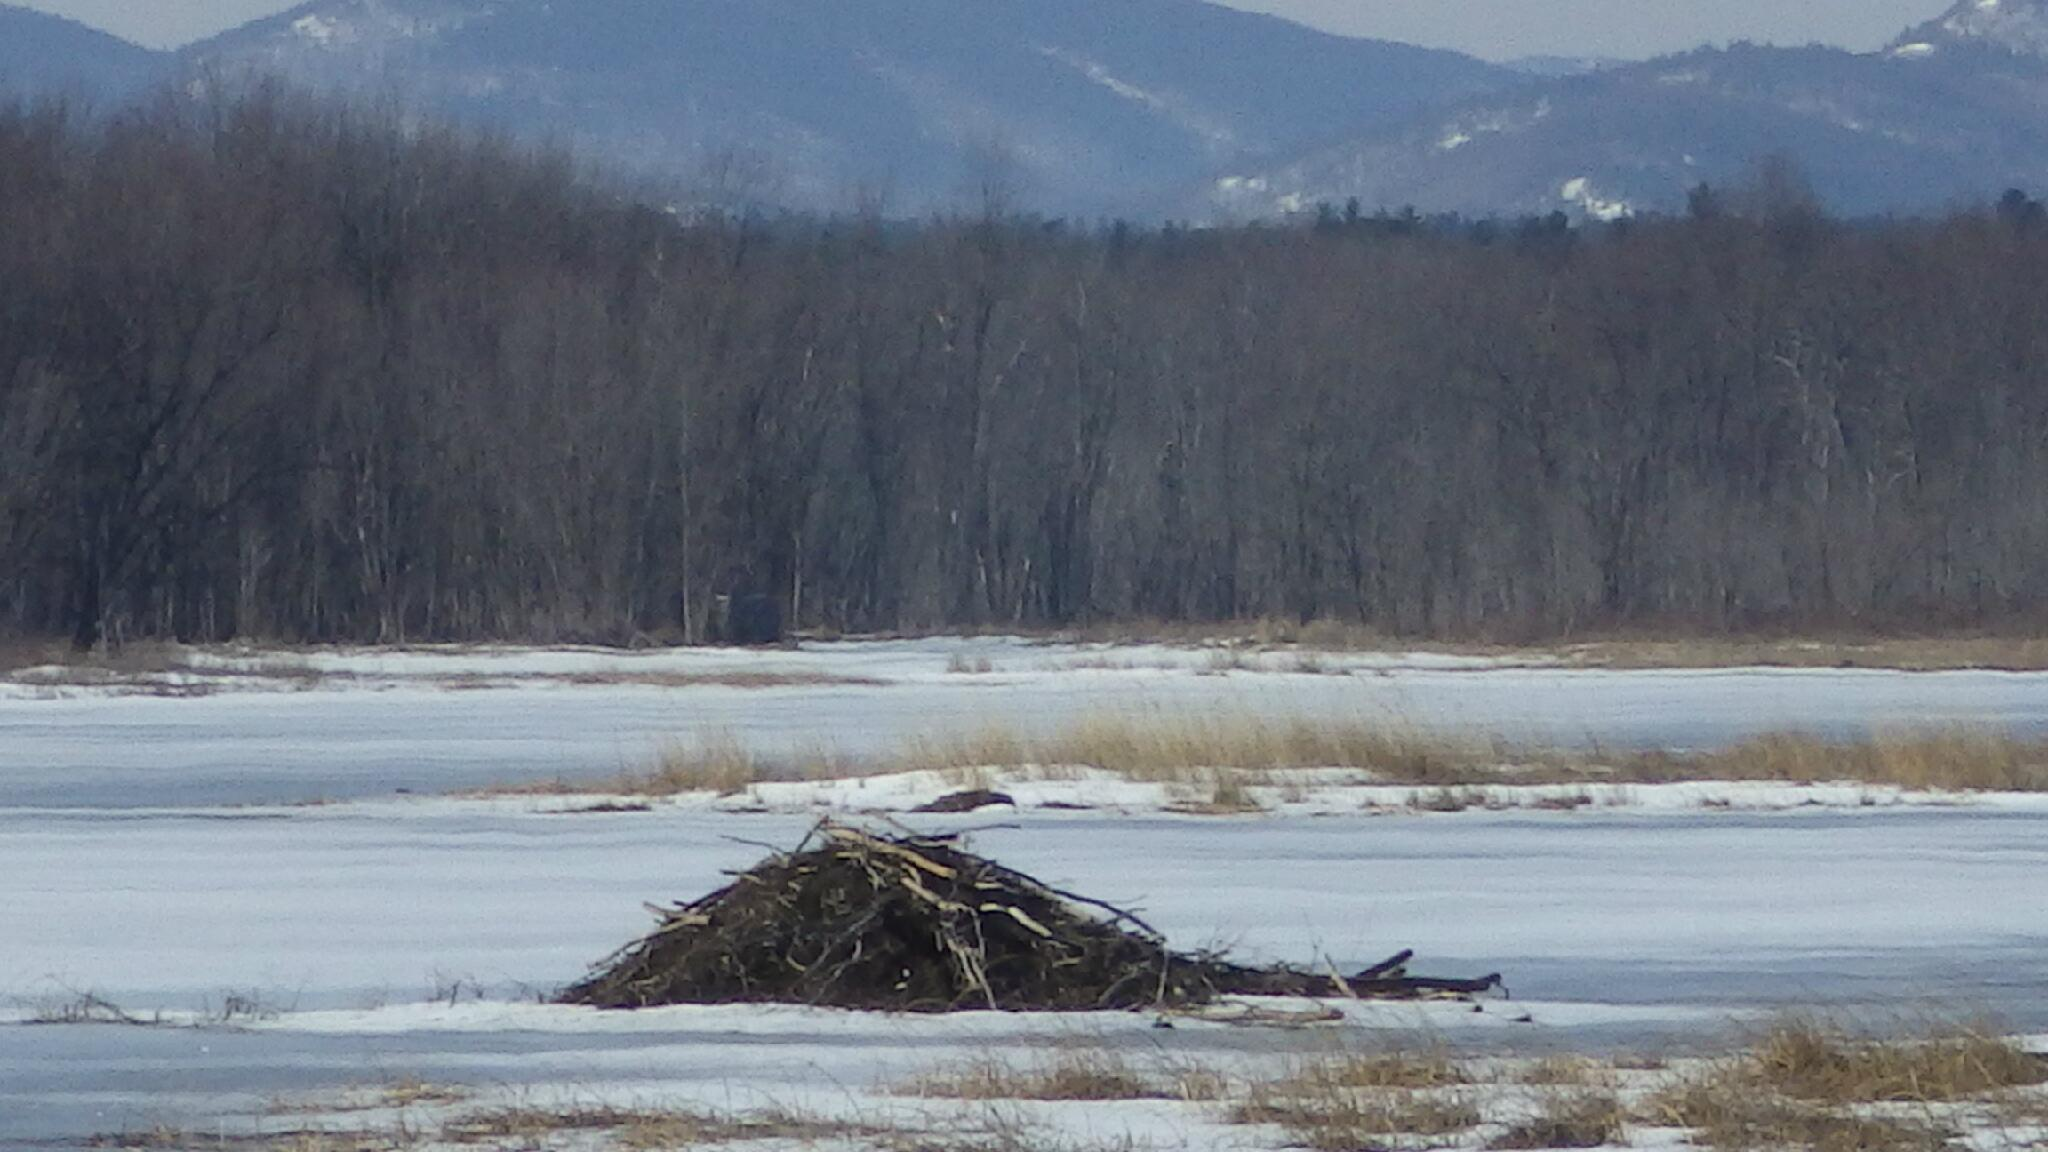 Spring time at Ausable Marsh. #adirondacks #lakechamplain http://t.co/e6iUX1YyZF